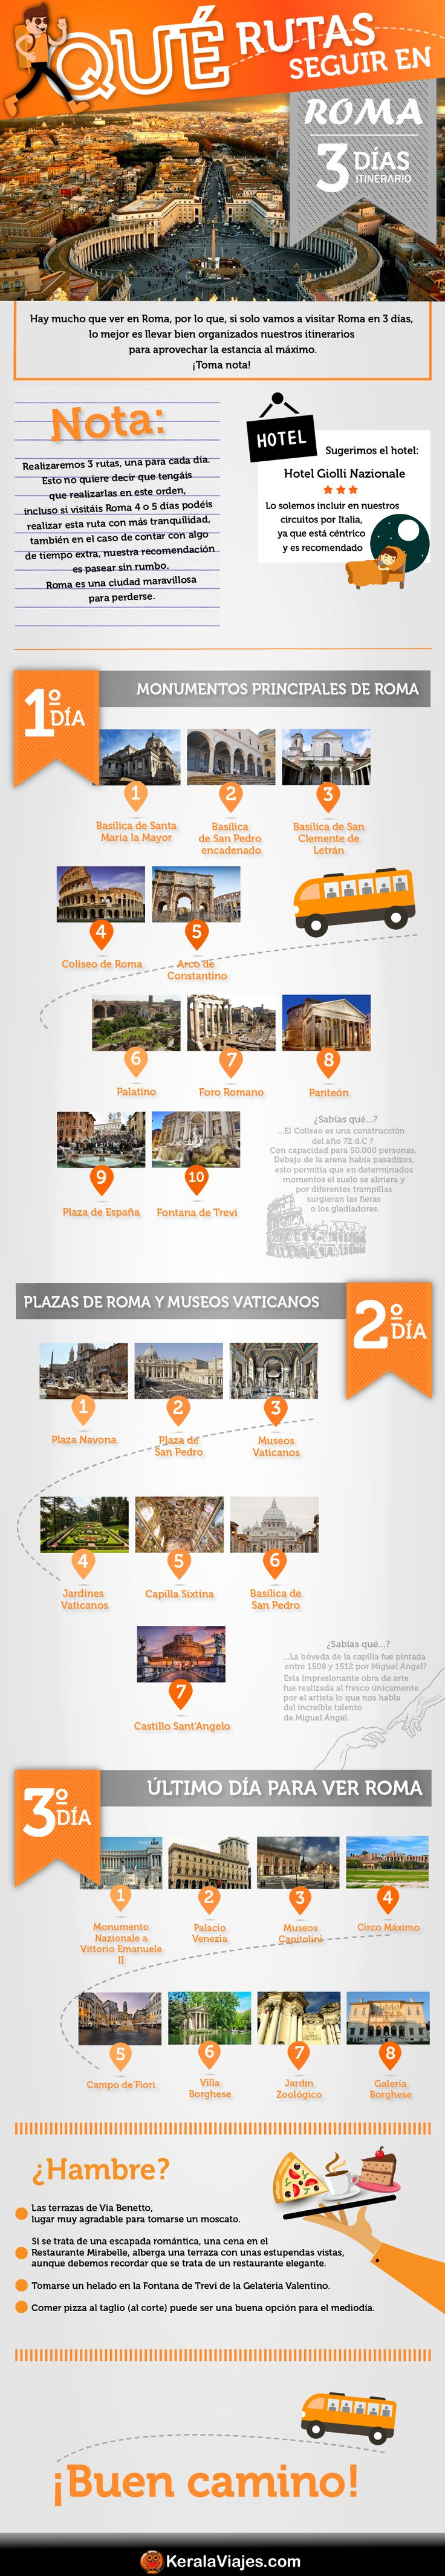 Qué ver en Roma en 3 Días #infografía Hemos creado una mini guía de Roma para no perderse nada de la ciudad eterna en 3 días, sabemos que es poco para una ciudad con tantos monumentos y atractivos pero si gracias a esta guía nos podemos organizar bien. ✈✈✈ Don't miss your chance to win a Free International Roundtrip Ticket to anywhere in the world **GIVEAWAY** ✈✈✈ https://thedecisionmoment.com/free-roundtrip-tickets-giveaway/